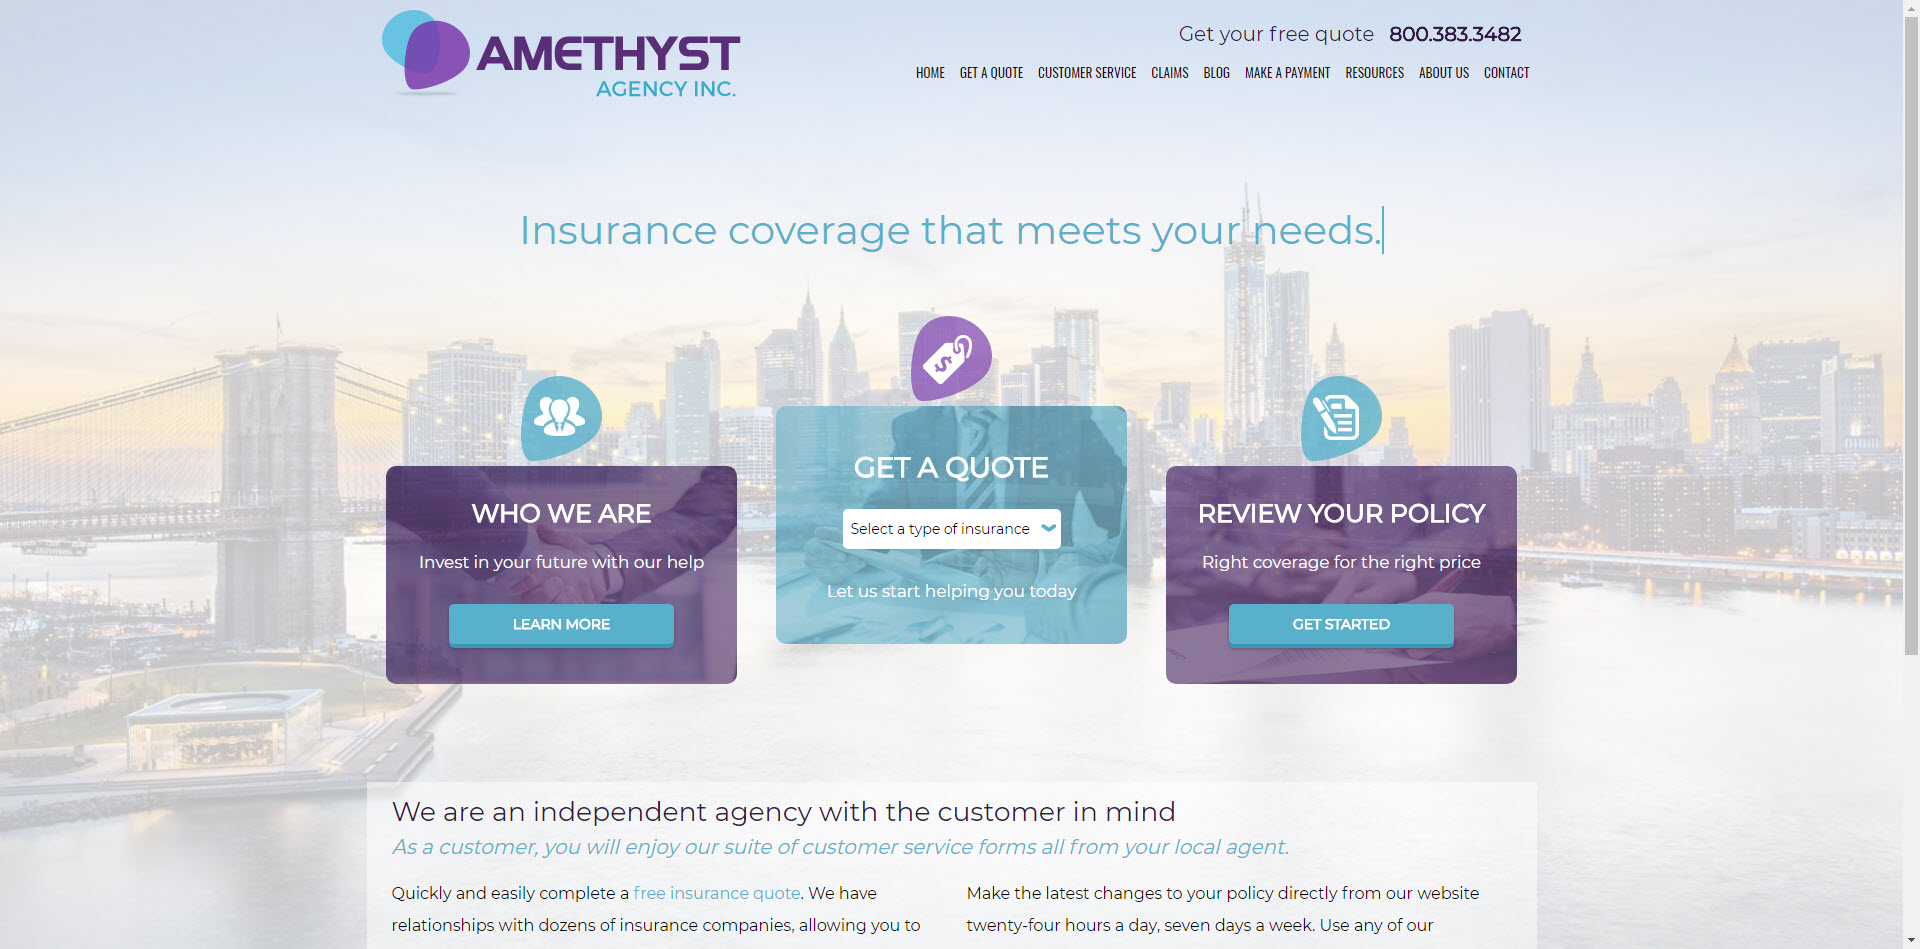 amethyst insurance website design